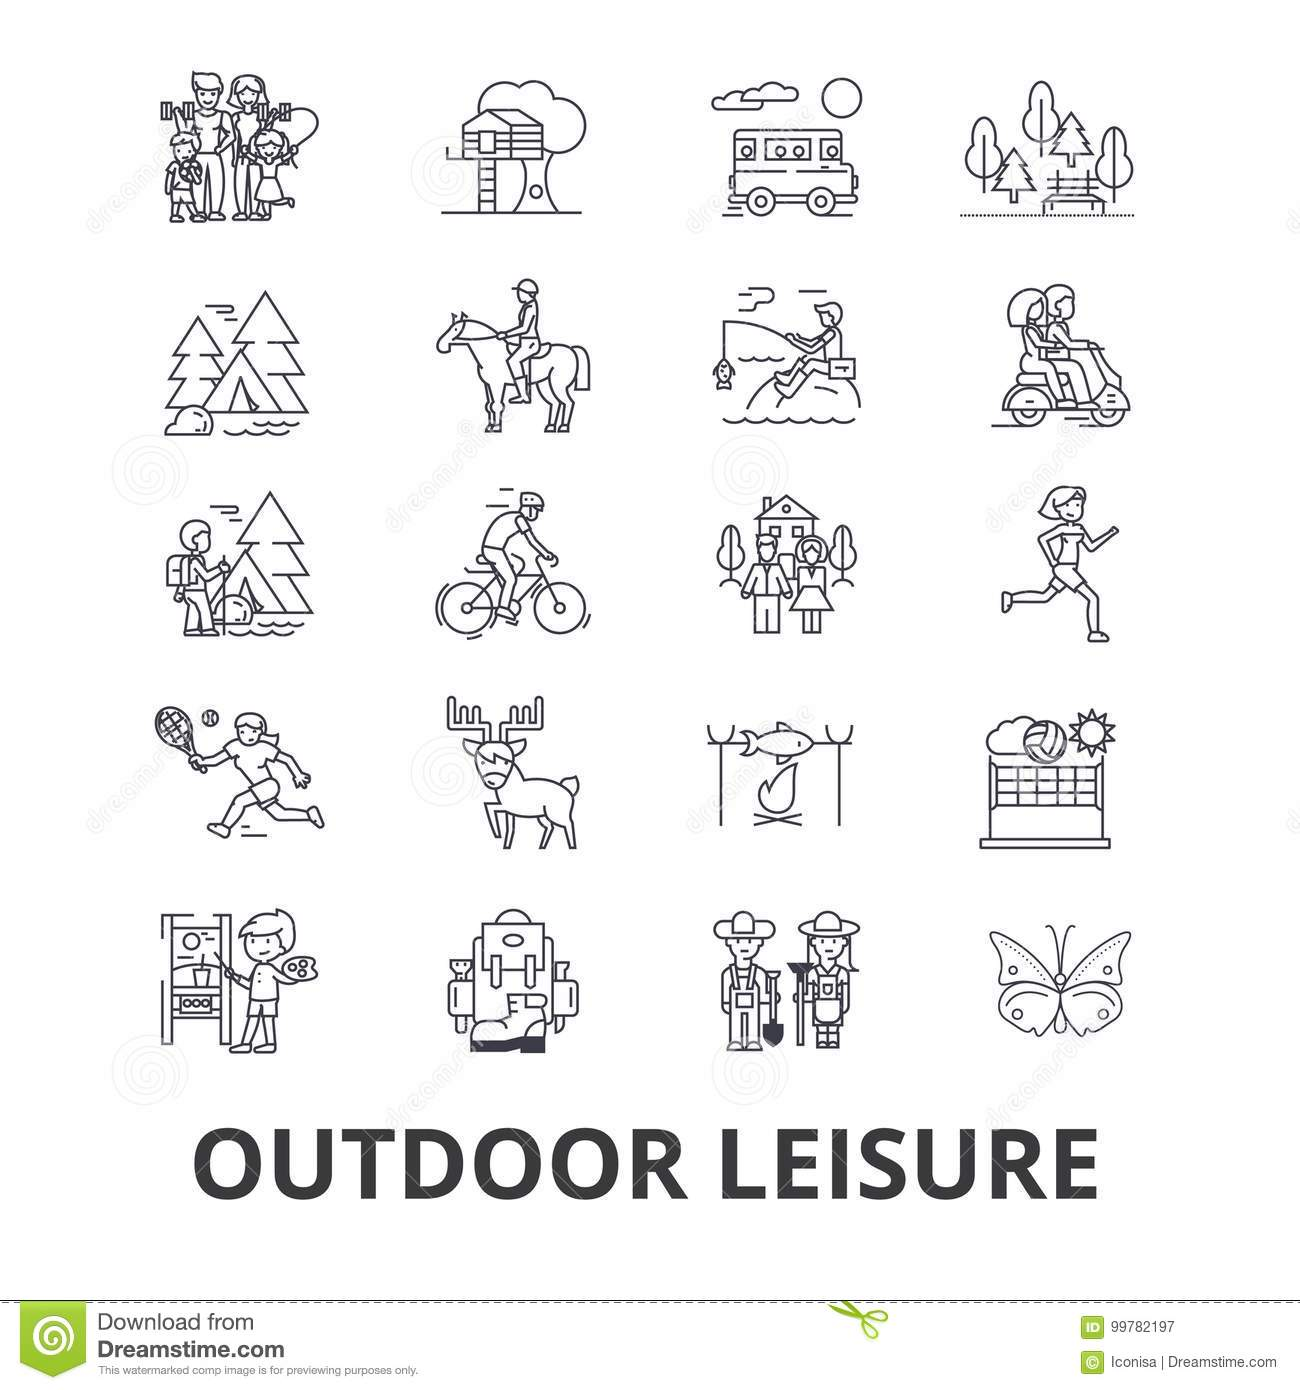 Outdoor leisure related icons